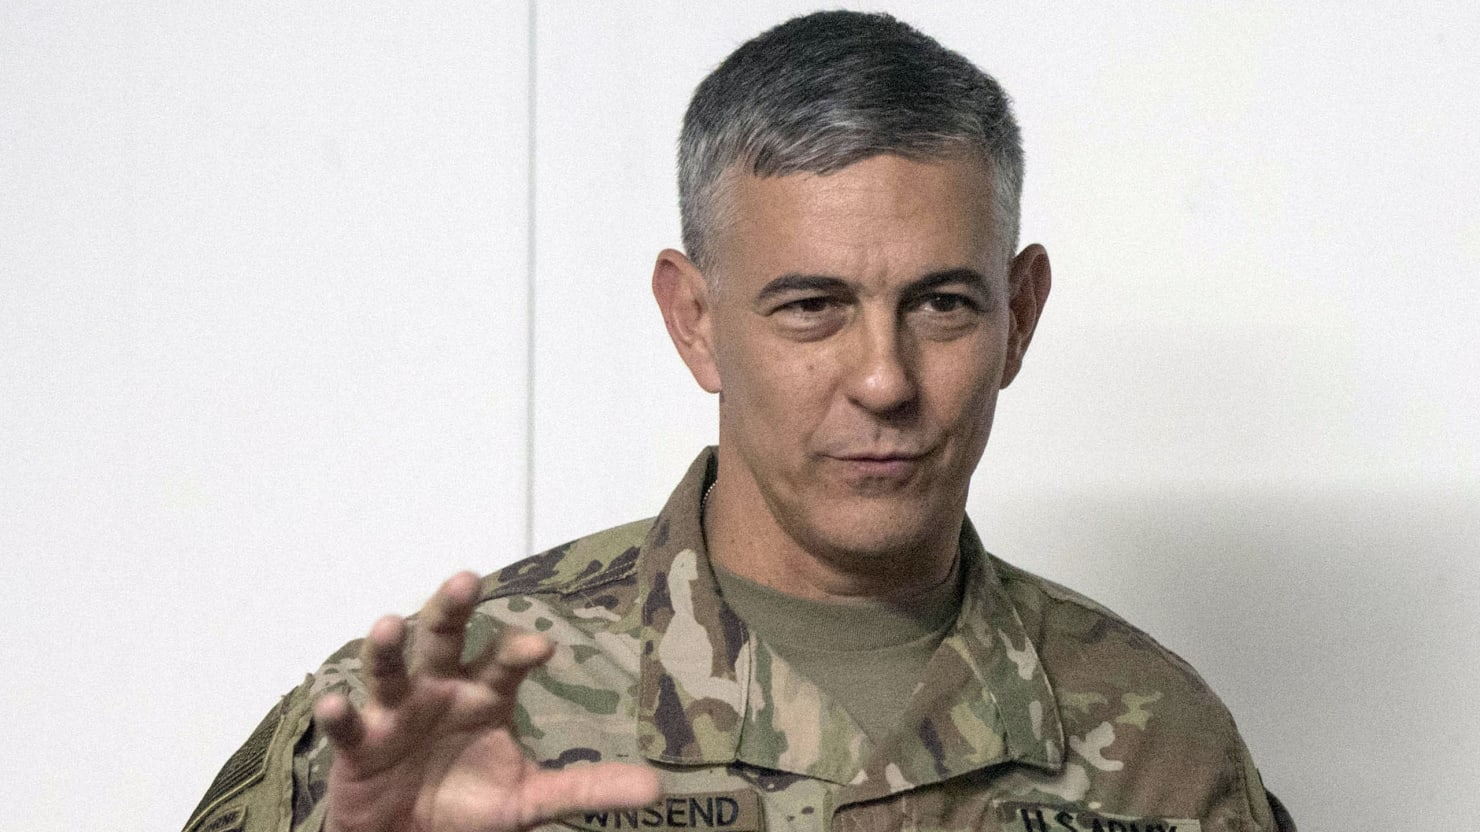 Top U.S. General: Two More Years to Beat ISIS